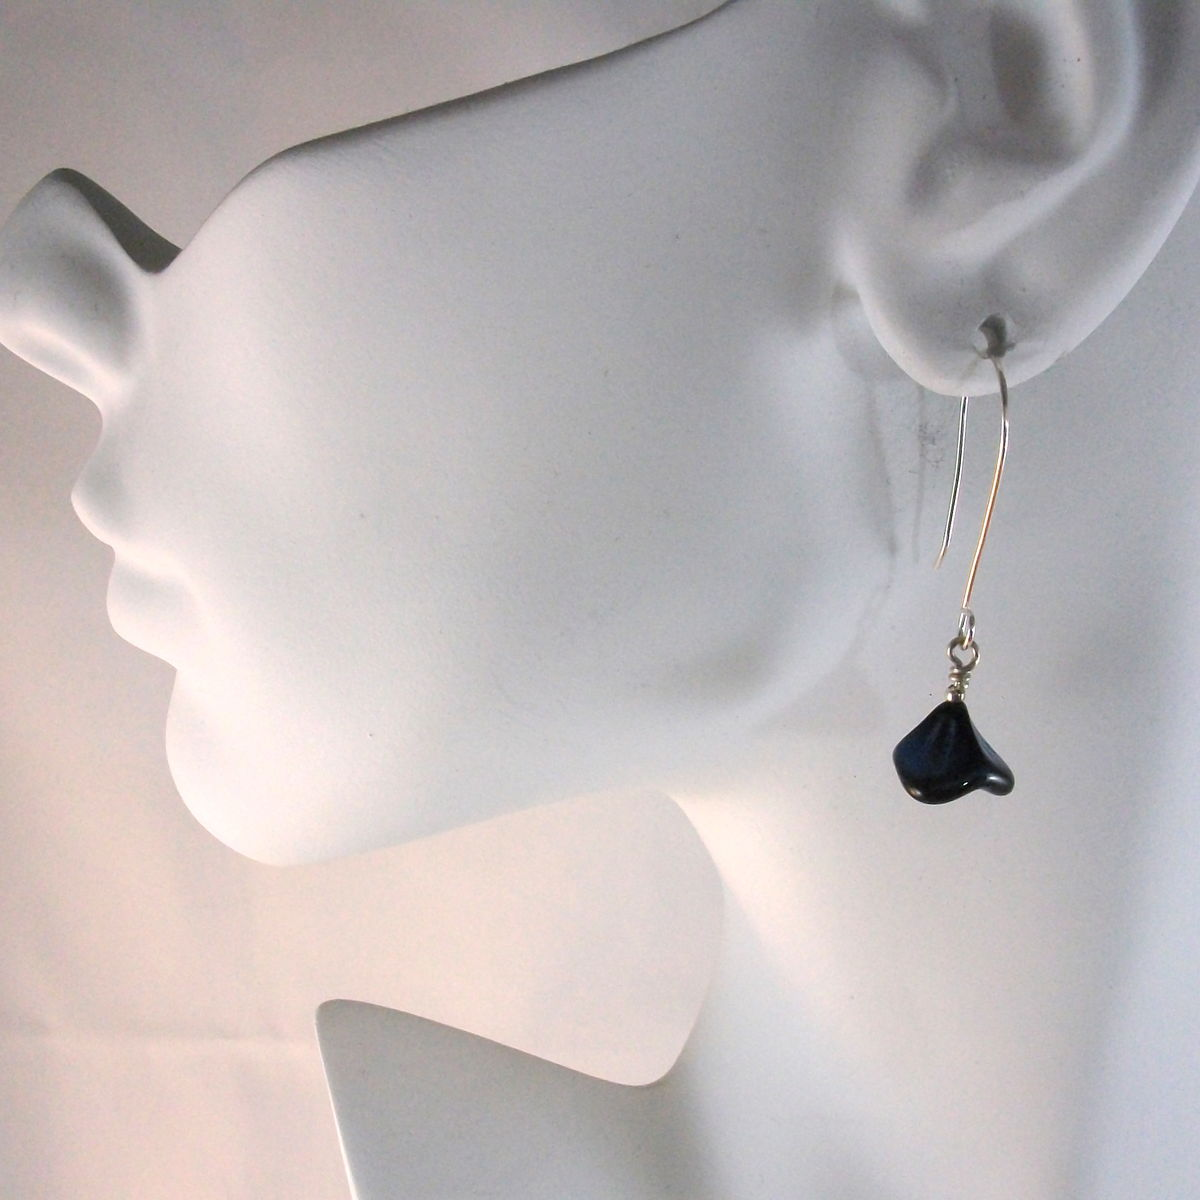 Blue Bell Flower Glass Dangle Earrings Argentium Sterling Silver - product images  of